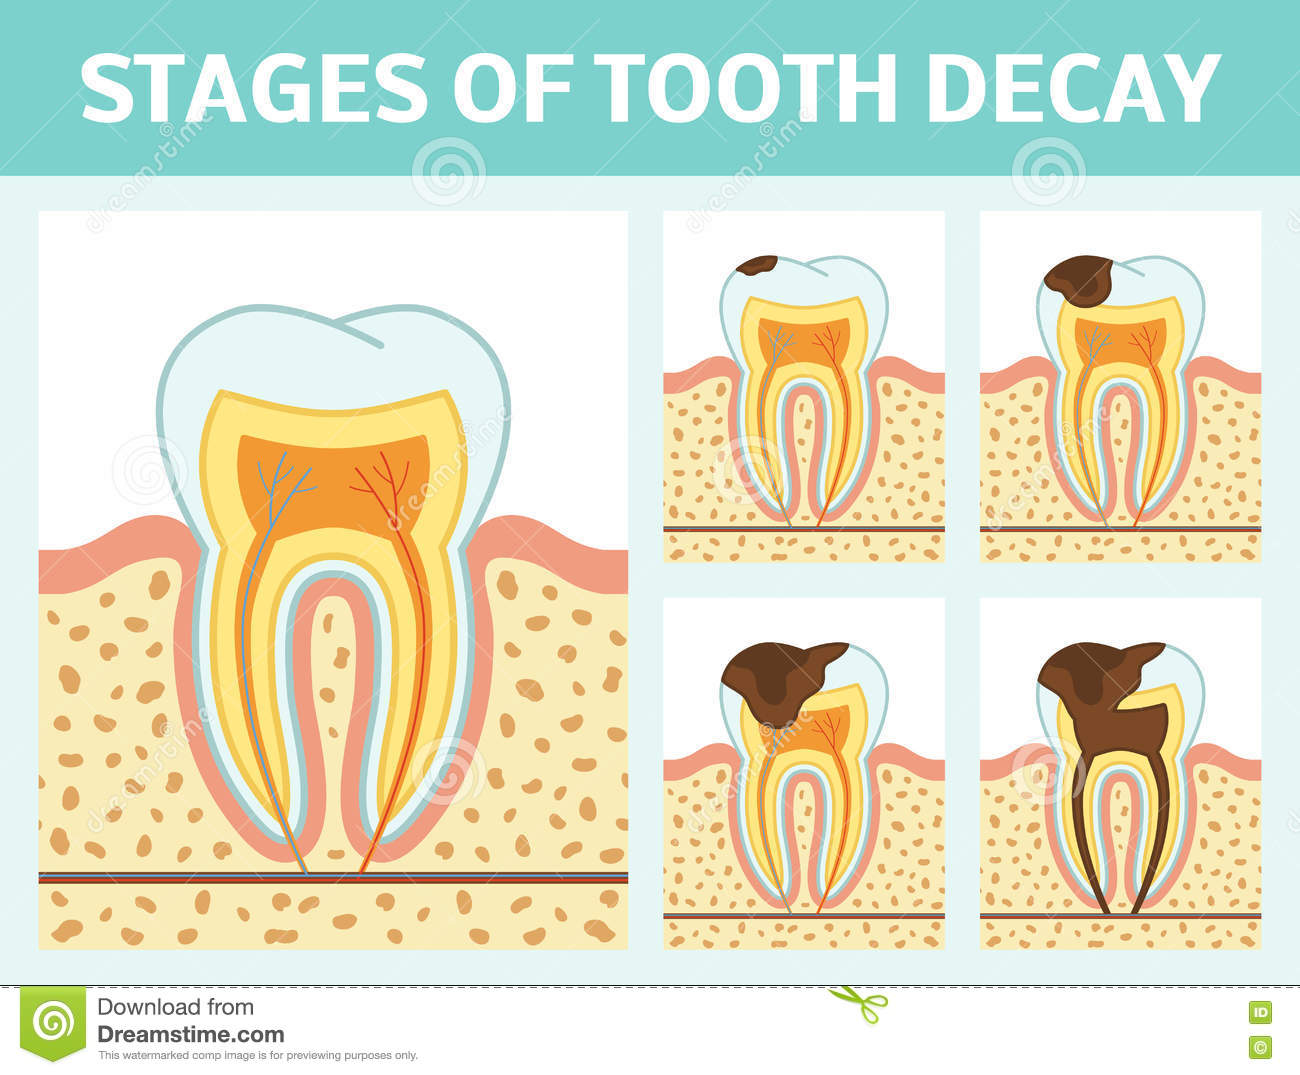 Tooth Decay Stages Stock Illustration - Image: 82408196